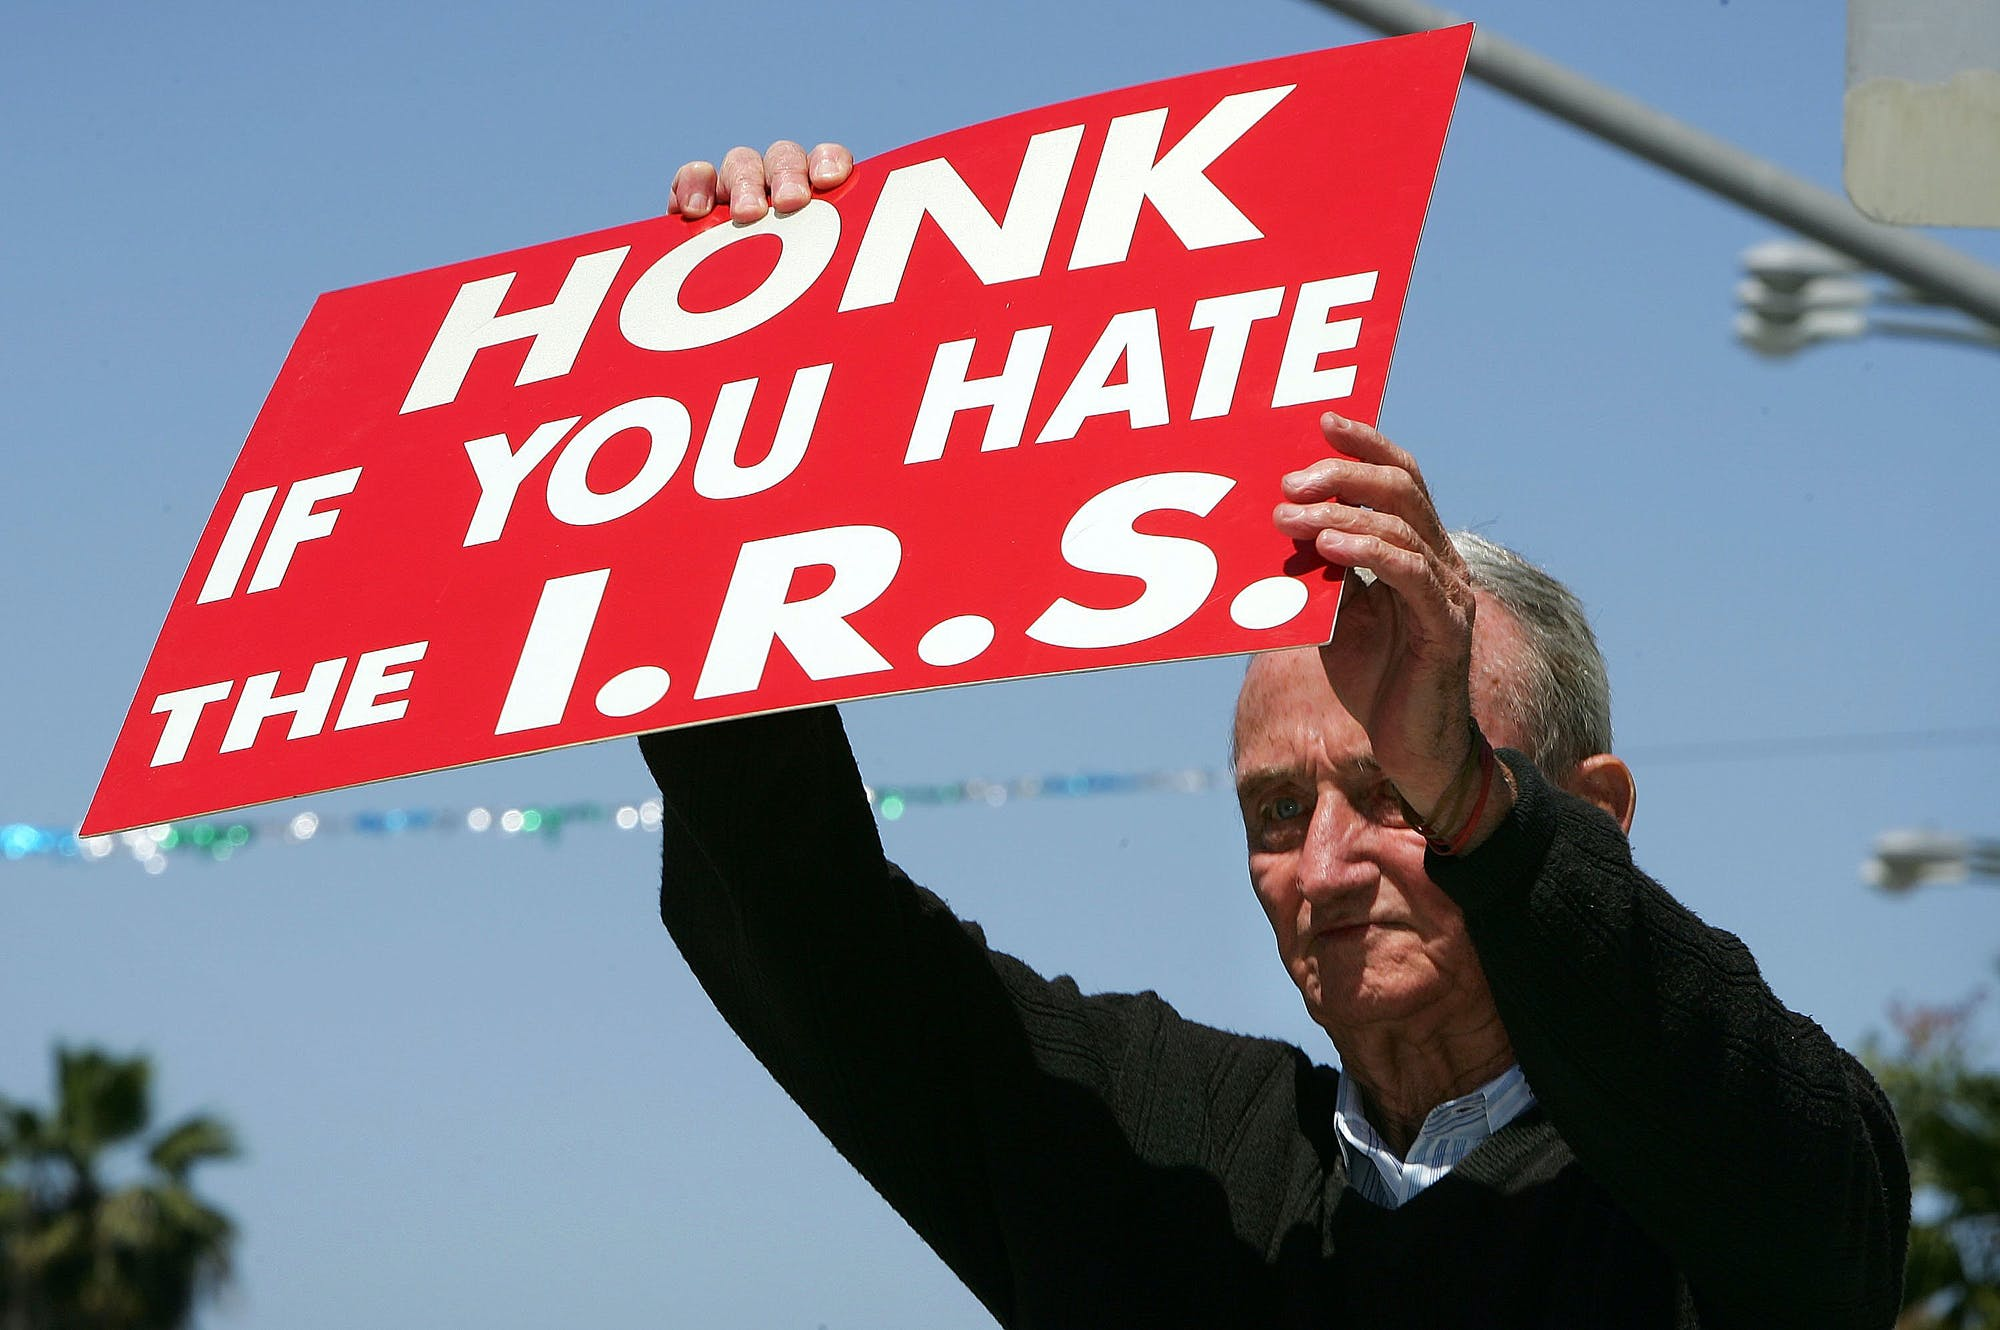 honkifyouhateirs The top 8 anti pot politicians up for re election this year